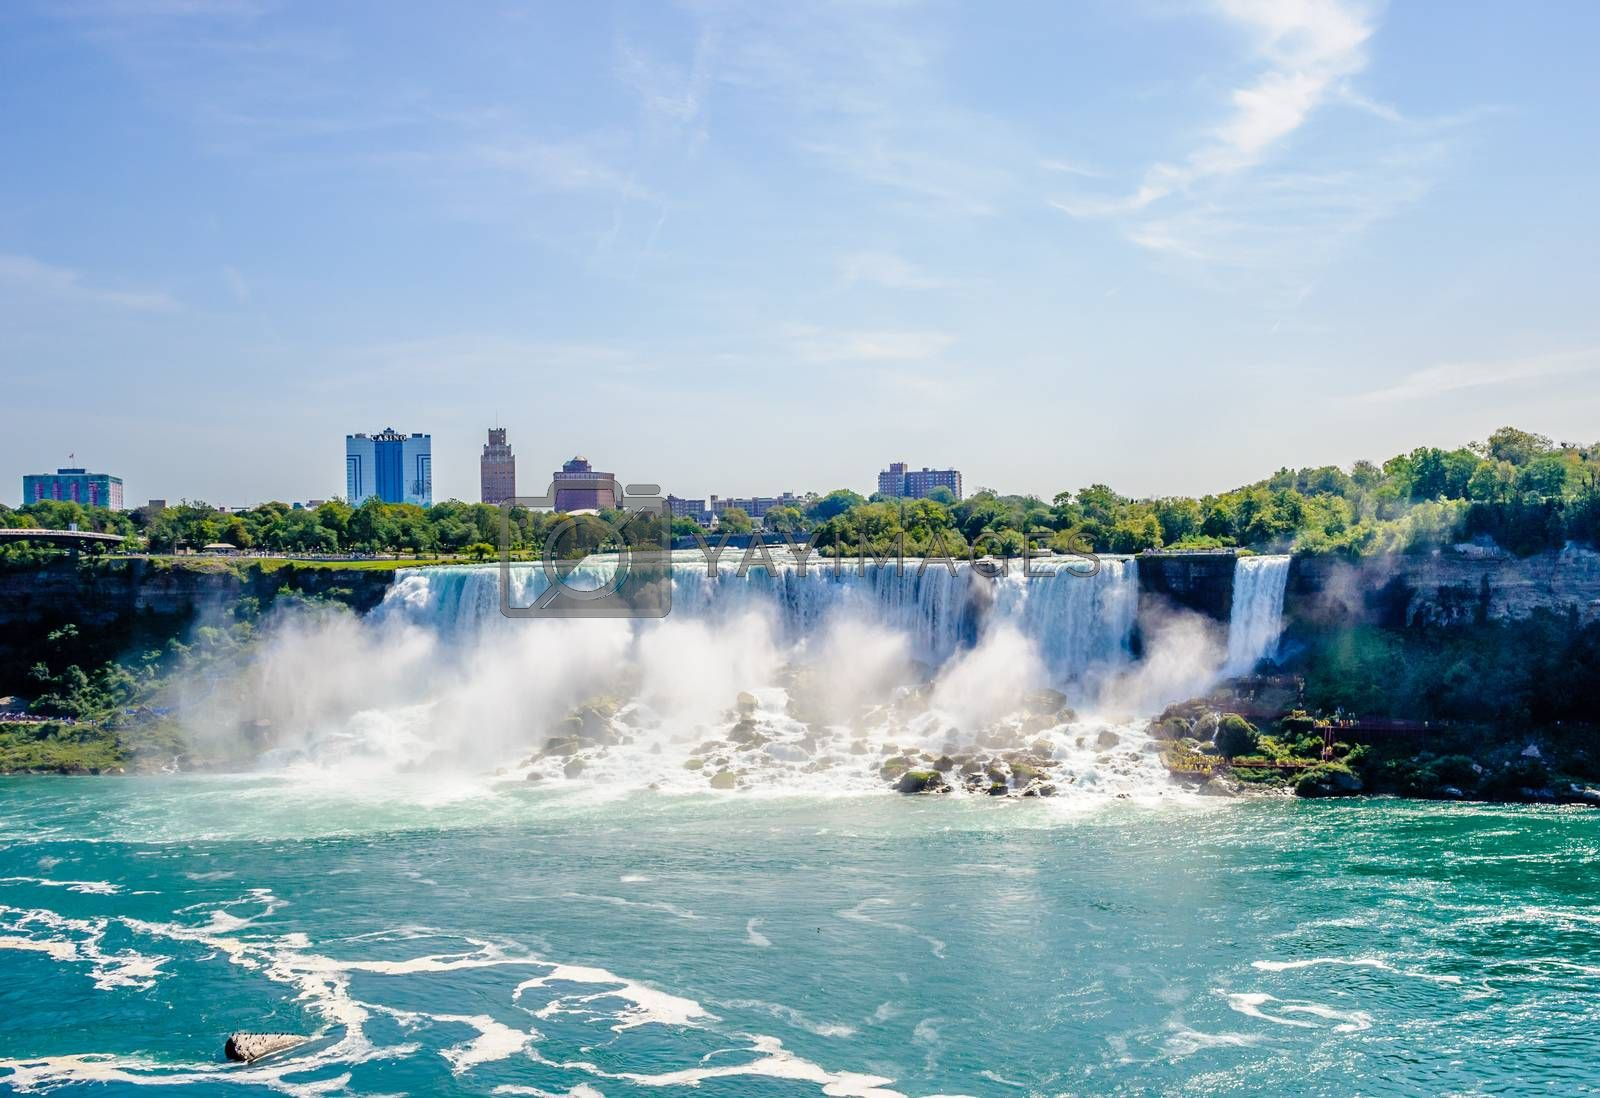 NIAGARA FALLS, CANADA - AUGUST 27, 2017: The American Falls and nearby buildings are visible from across the Niagara River.